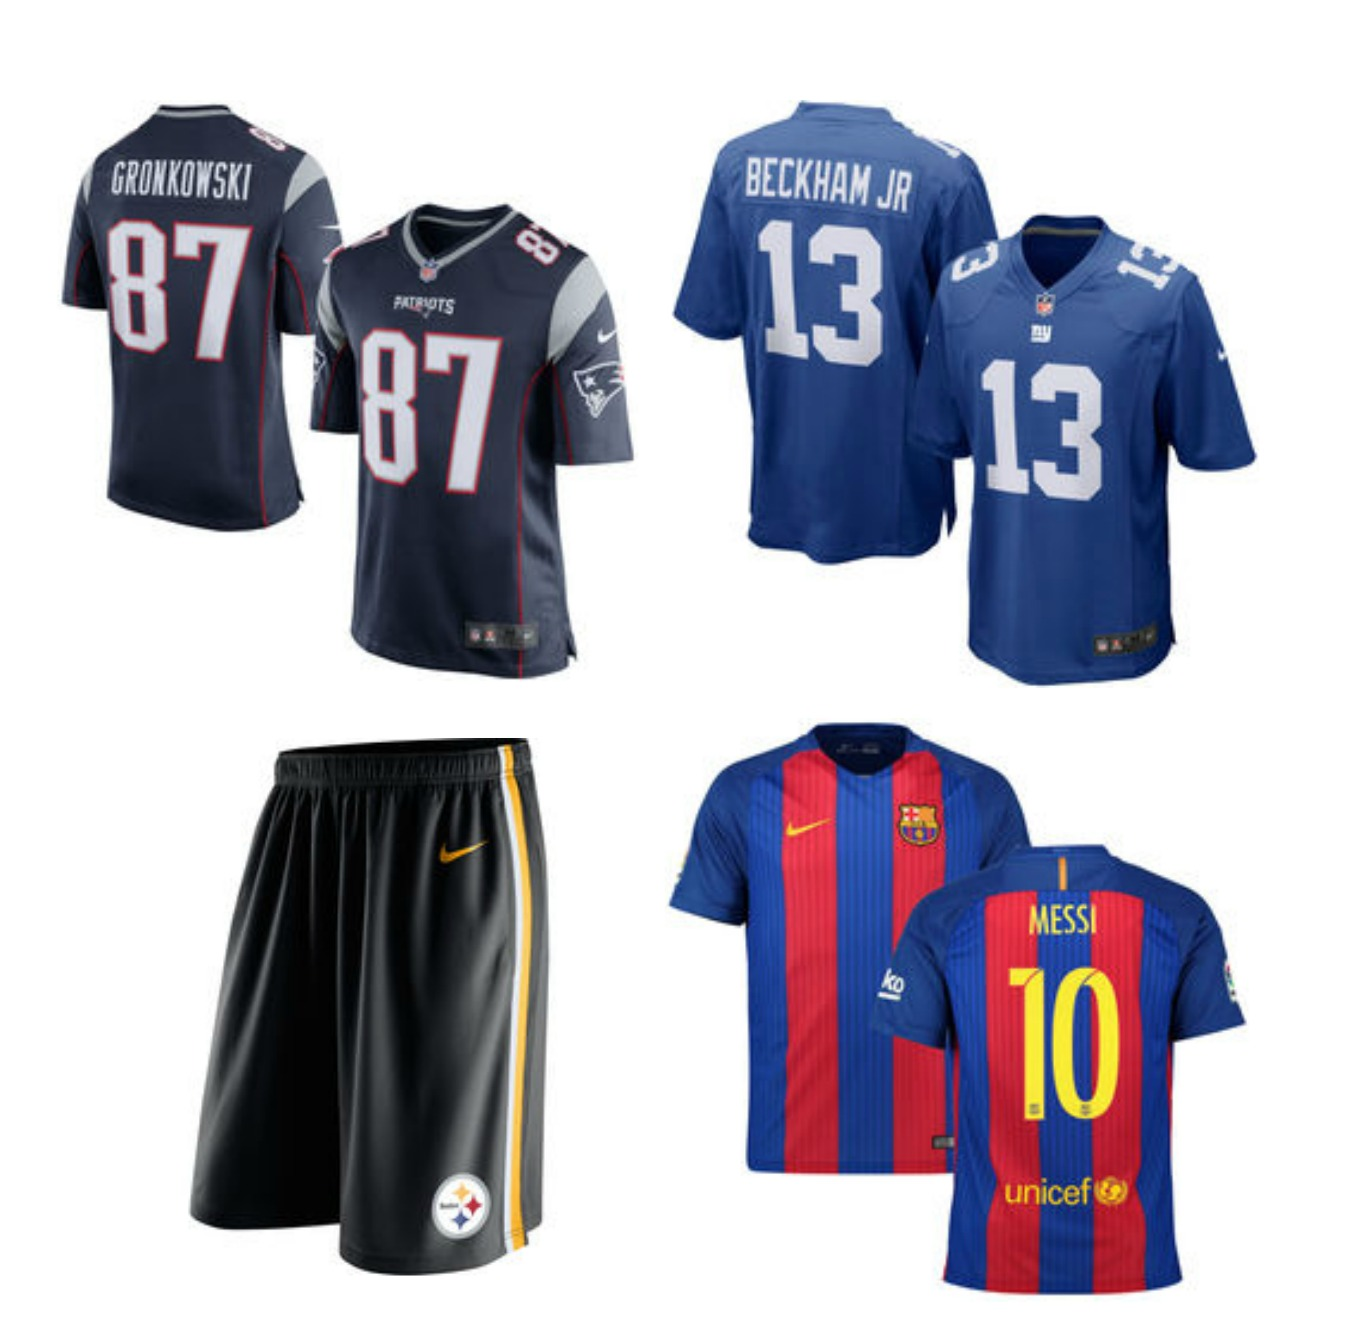 Nfl fan shop coupons : I9 sports coupon